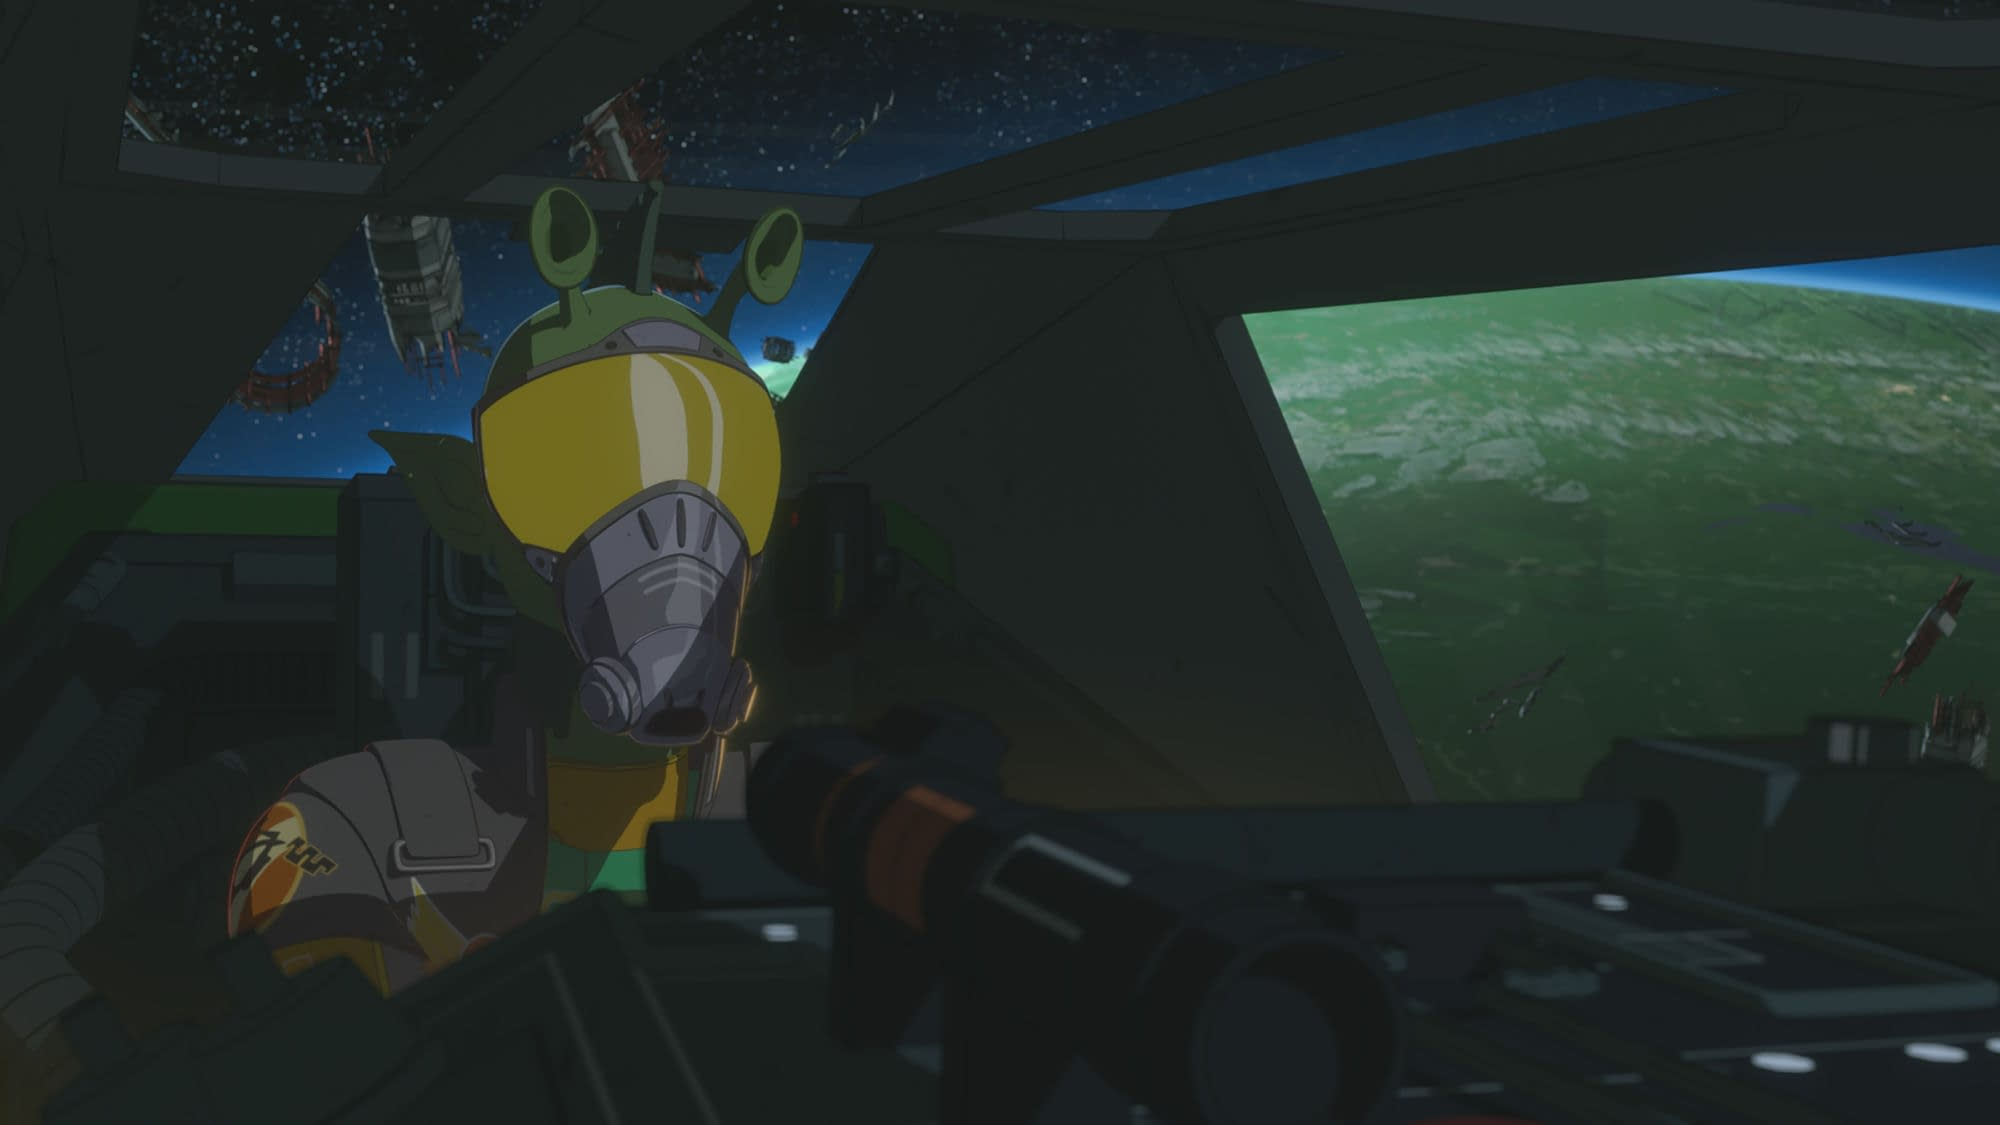 """Star Wars Resistance"" Season 2 Episode 2 ""A Quick Salvage Run"" Proves Anything But [PREVIEW]"